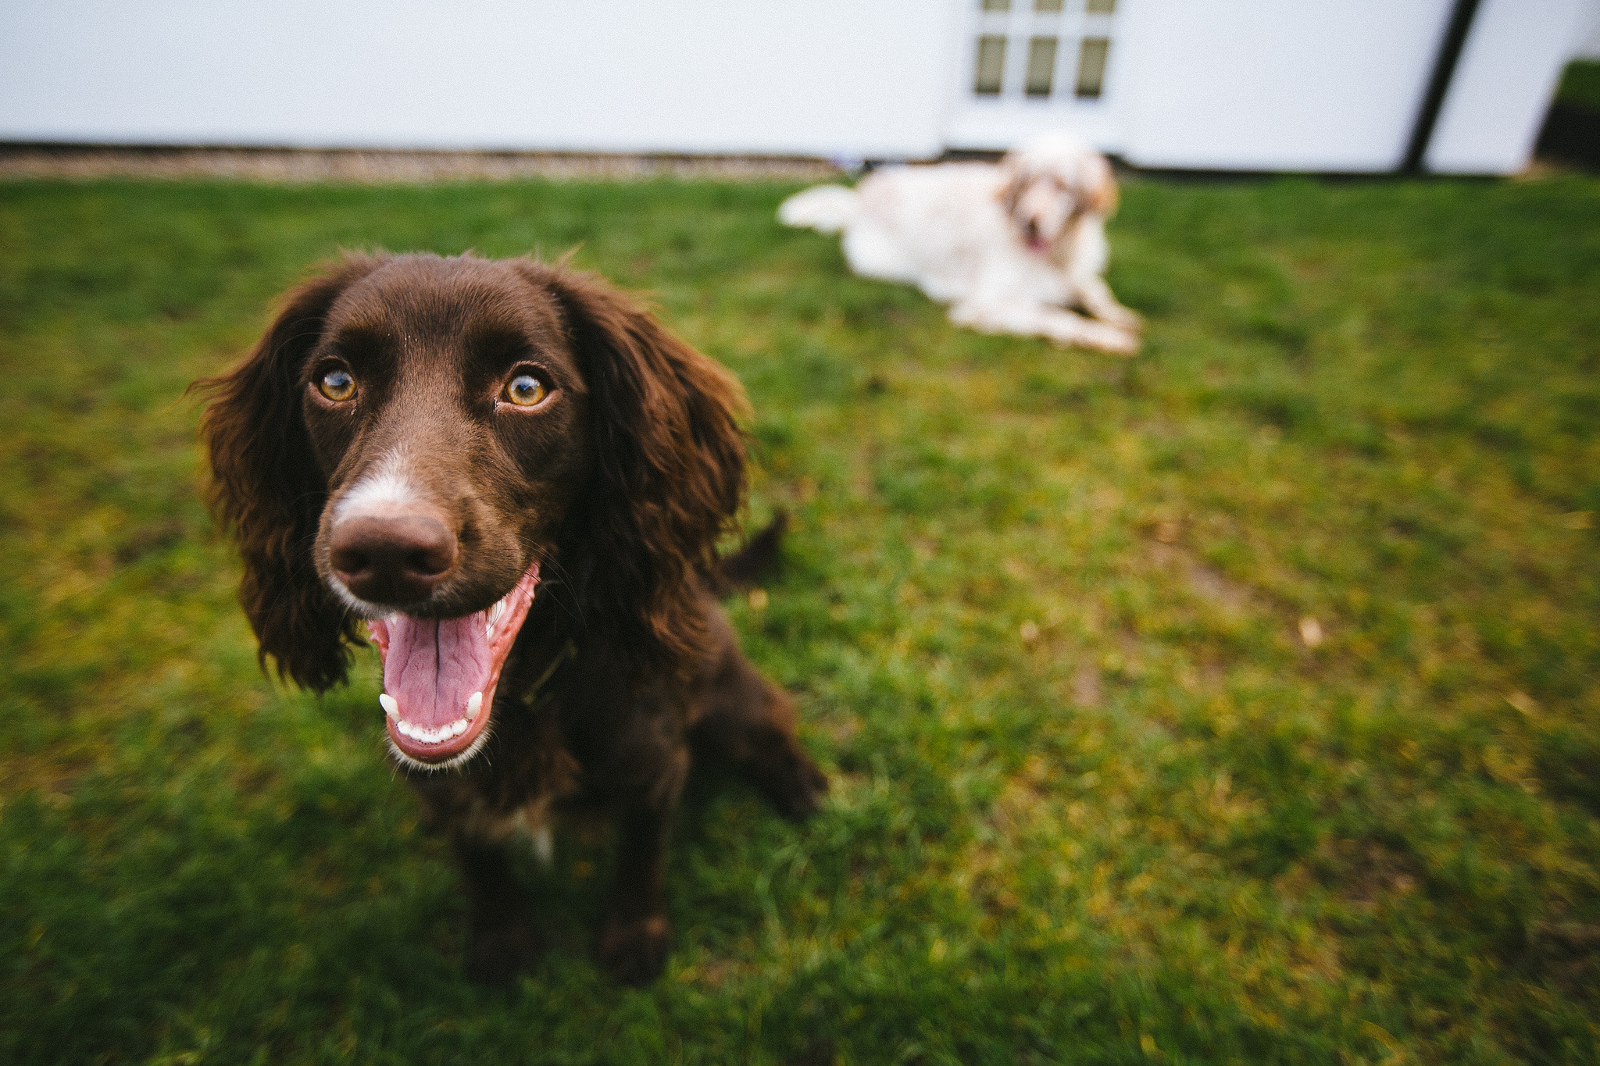 3 Common Puppy Behavior Problems and How To Correct Them Easily